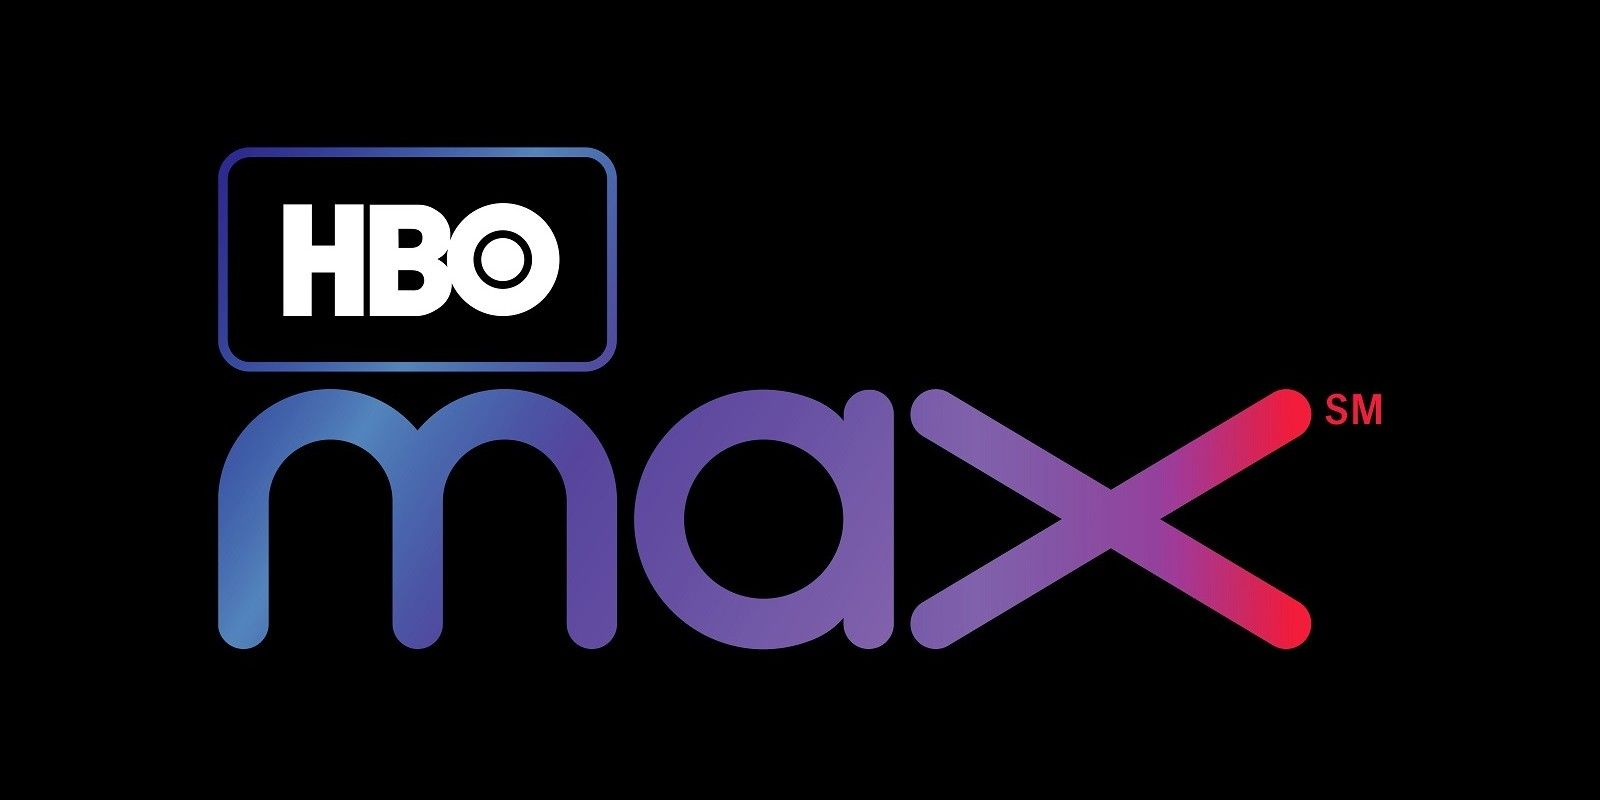 HBO Max Announces Full Crunchyroll Anime Lineup at Launch